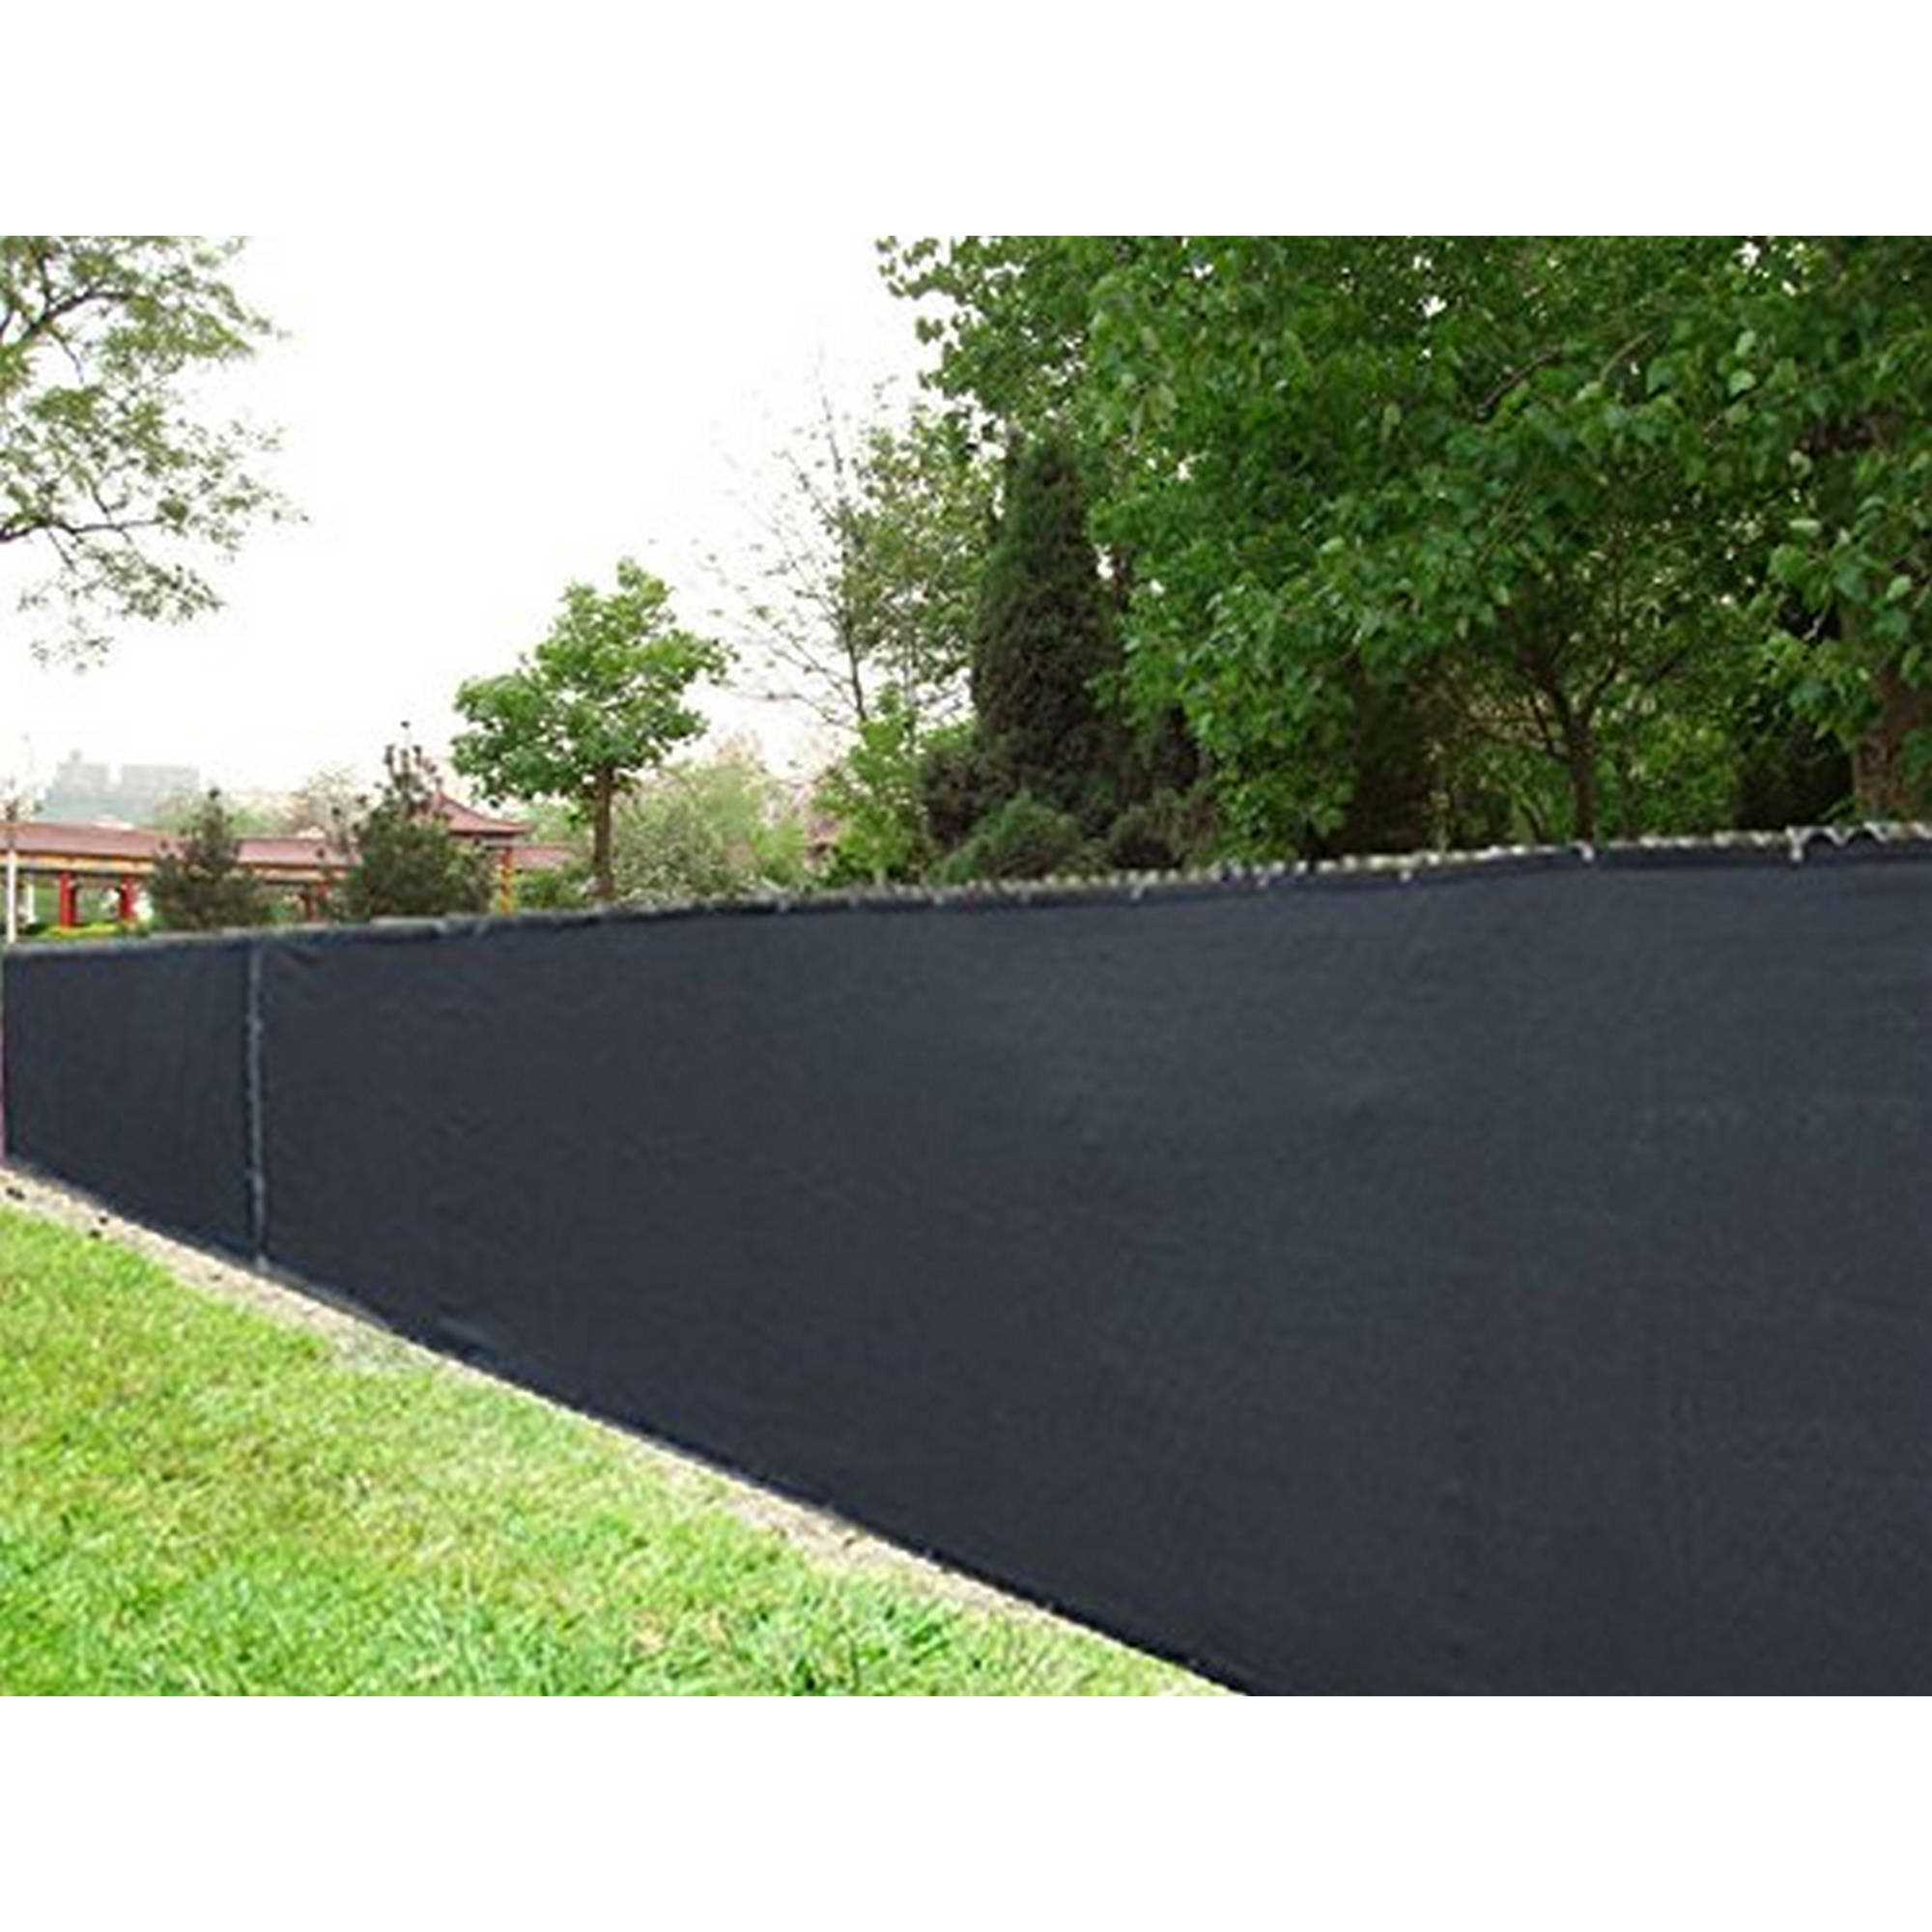 Aleko 6' x 50' Black Fence Privacy Screen Windscreen Shade Cover Mesh Fabric by ALEKO